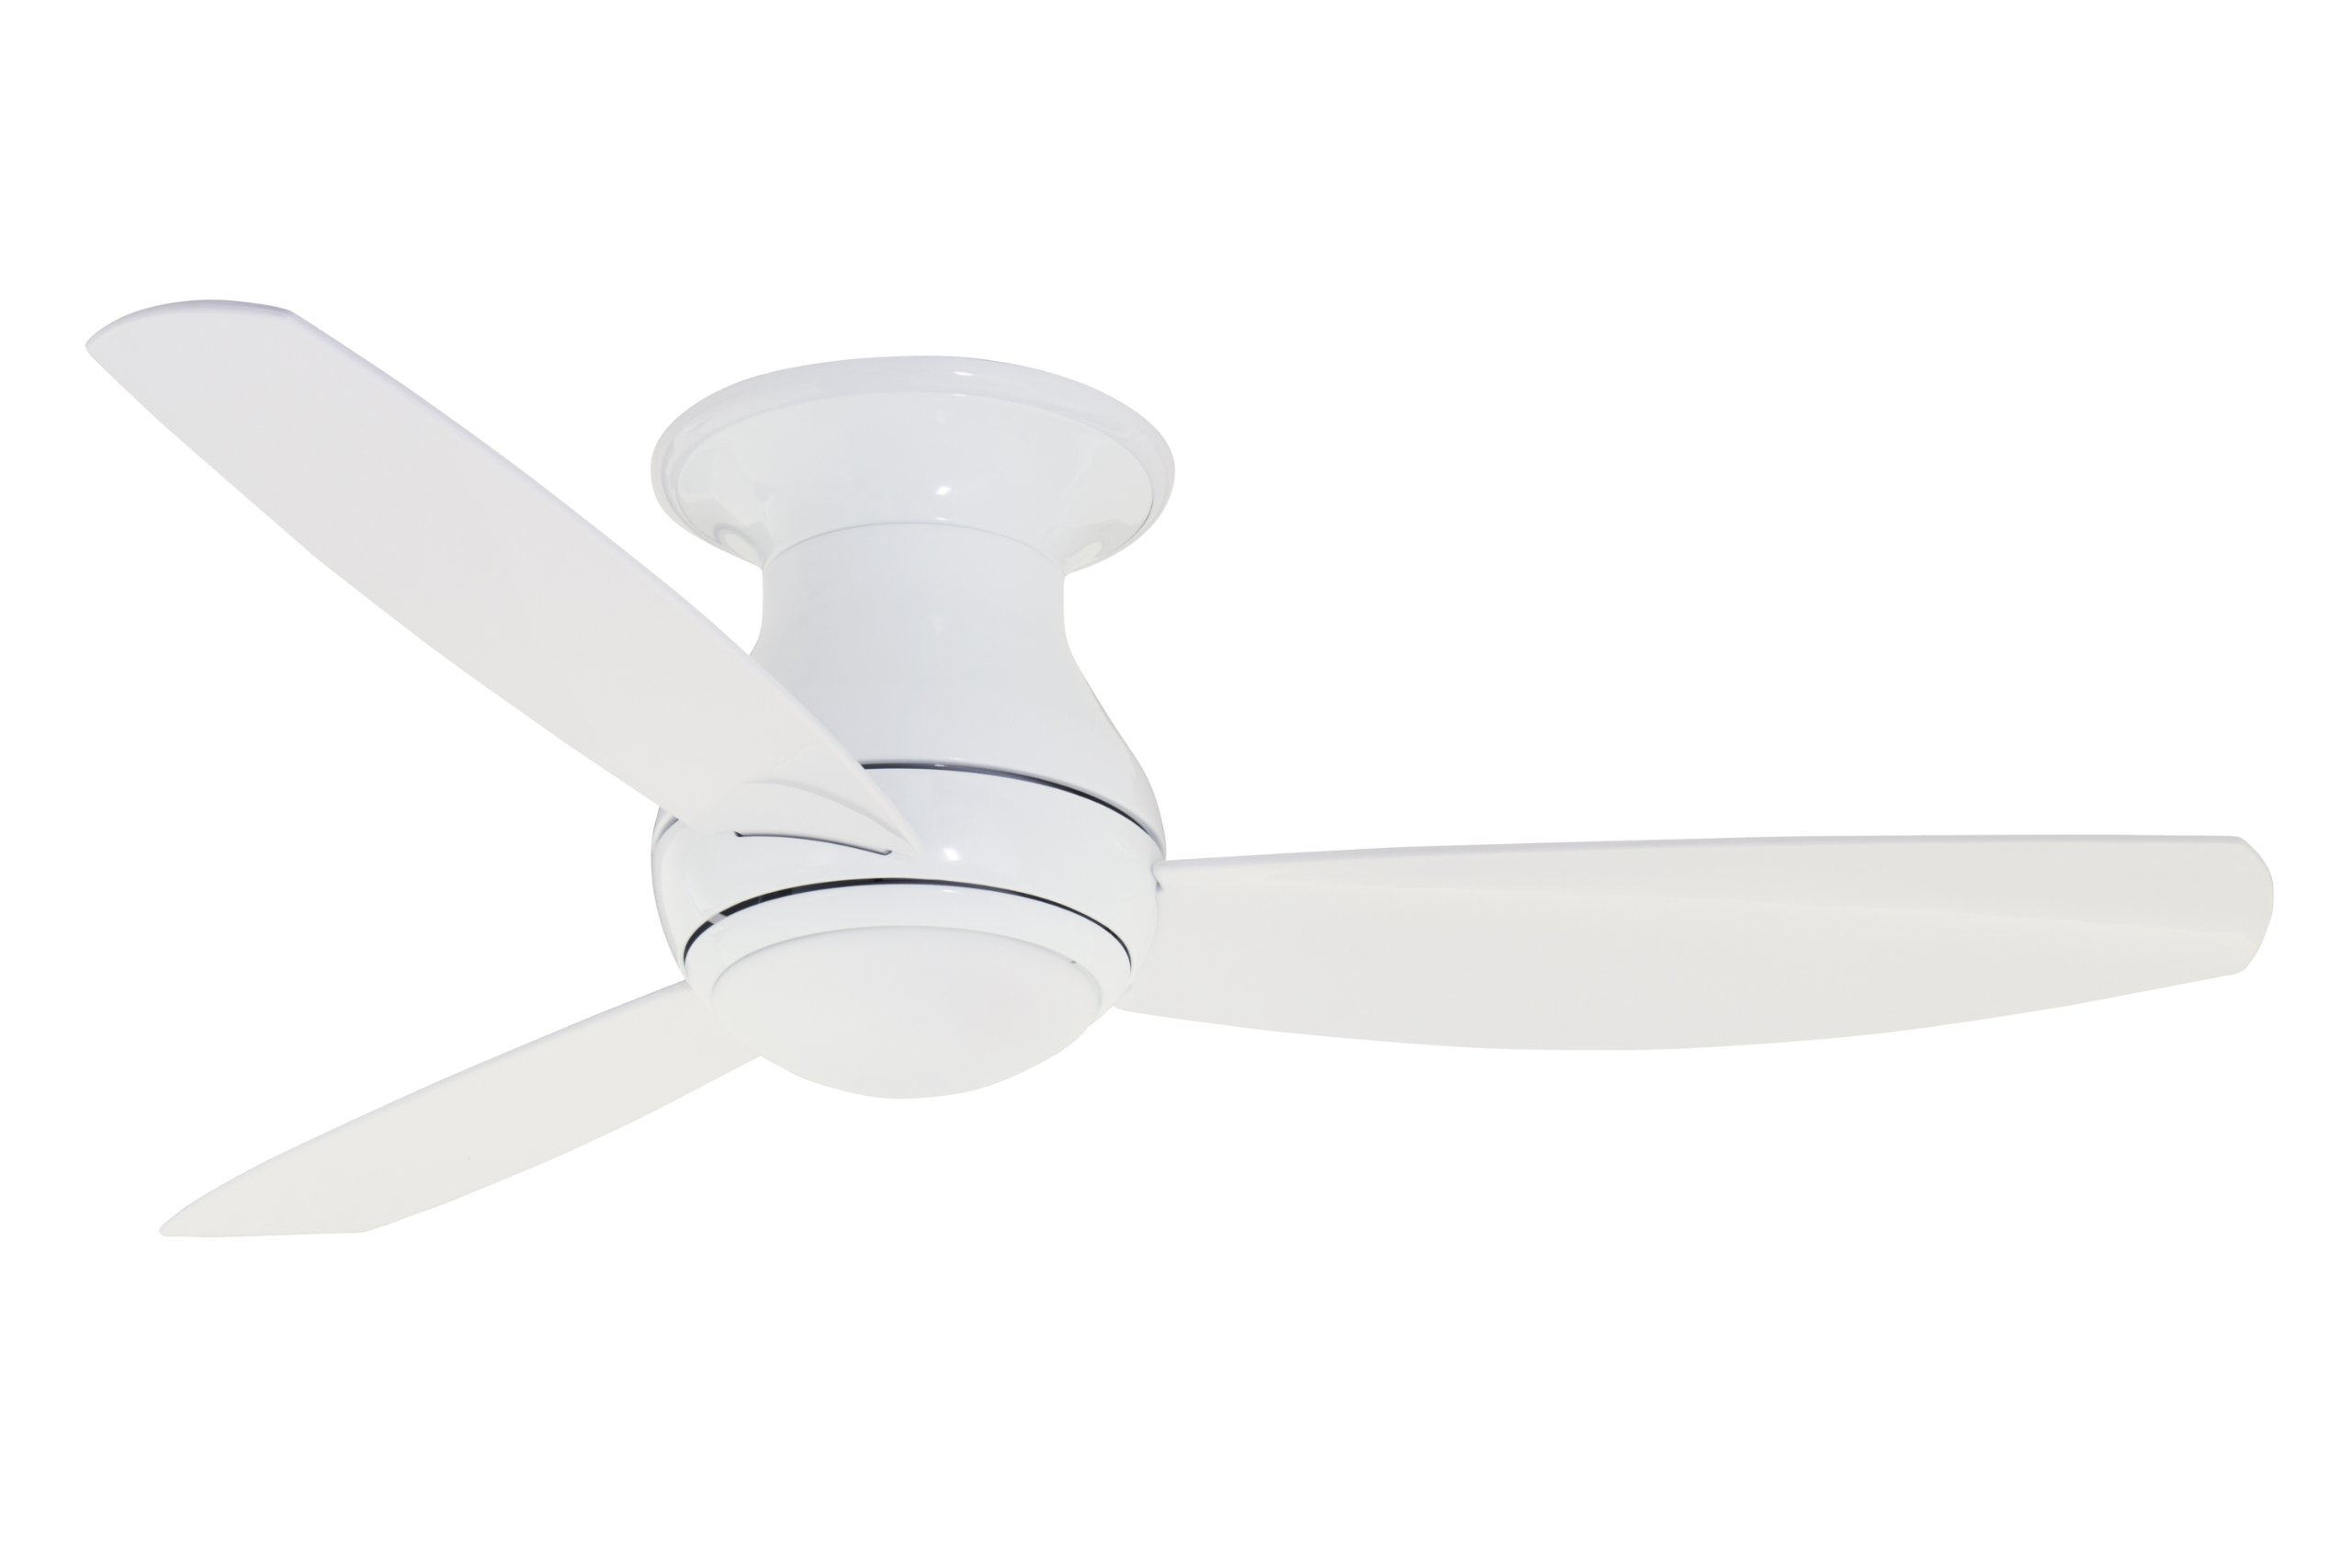 Emerson Ceiling Fans Cf152ww Curva Sky 52 Inch Modern Low Profile Hugger Indoor Outdoor Fan With Light And Remote Wet Rated Appliance White Finish